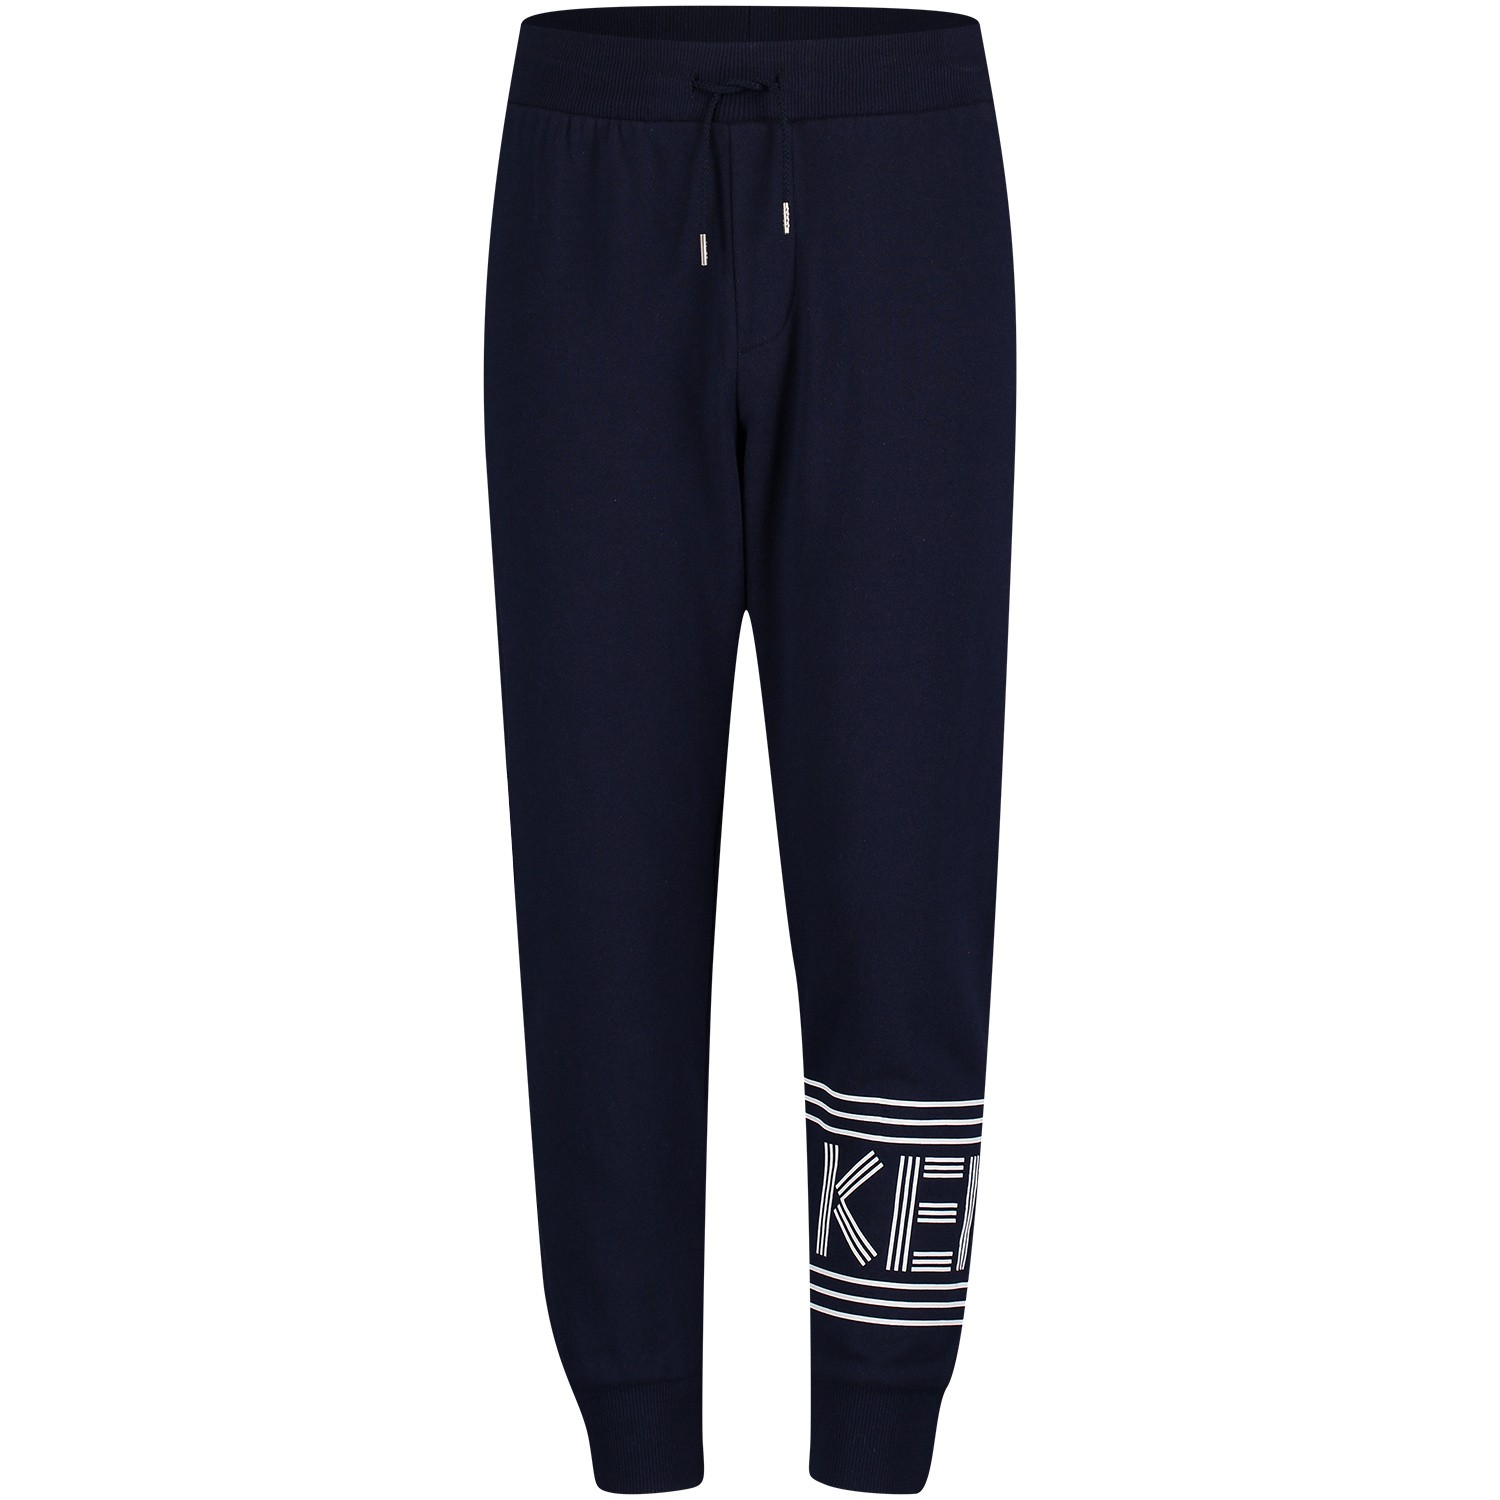 Picture of Kenzo KN23538 kids jeans navy